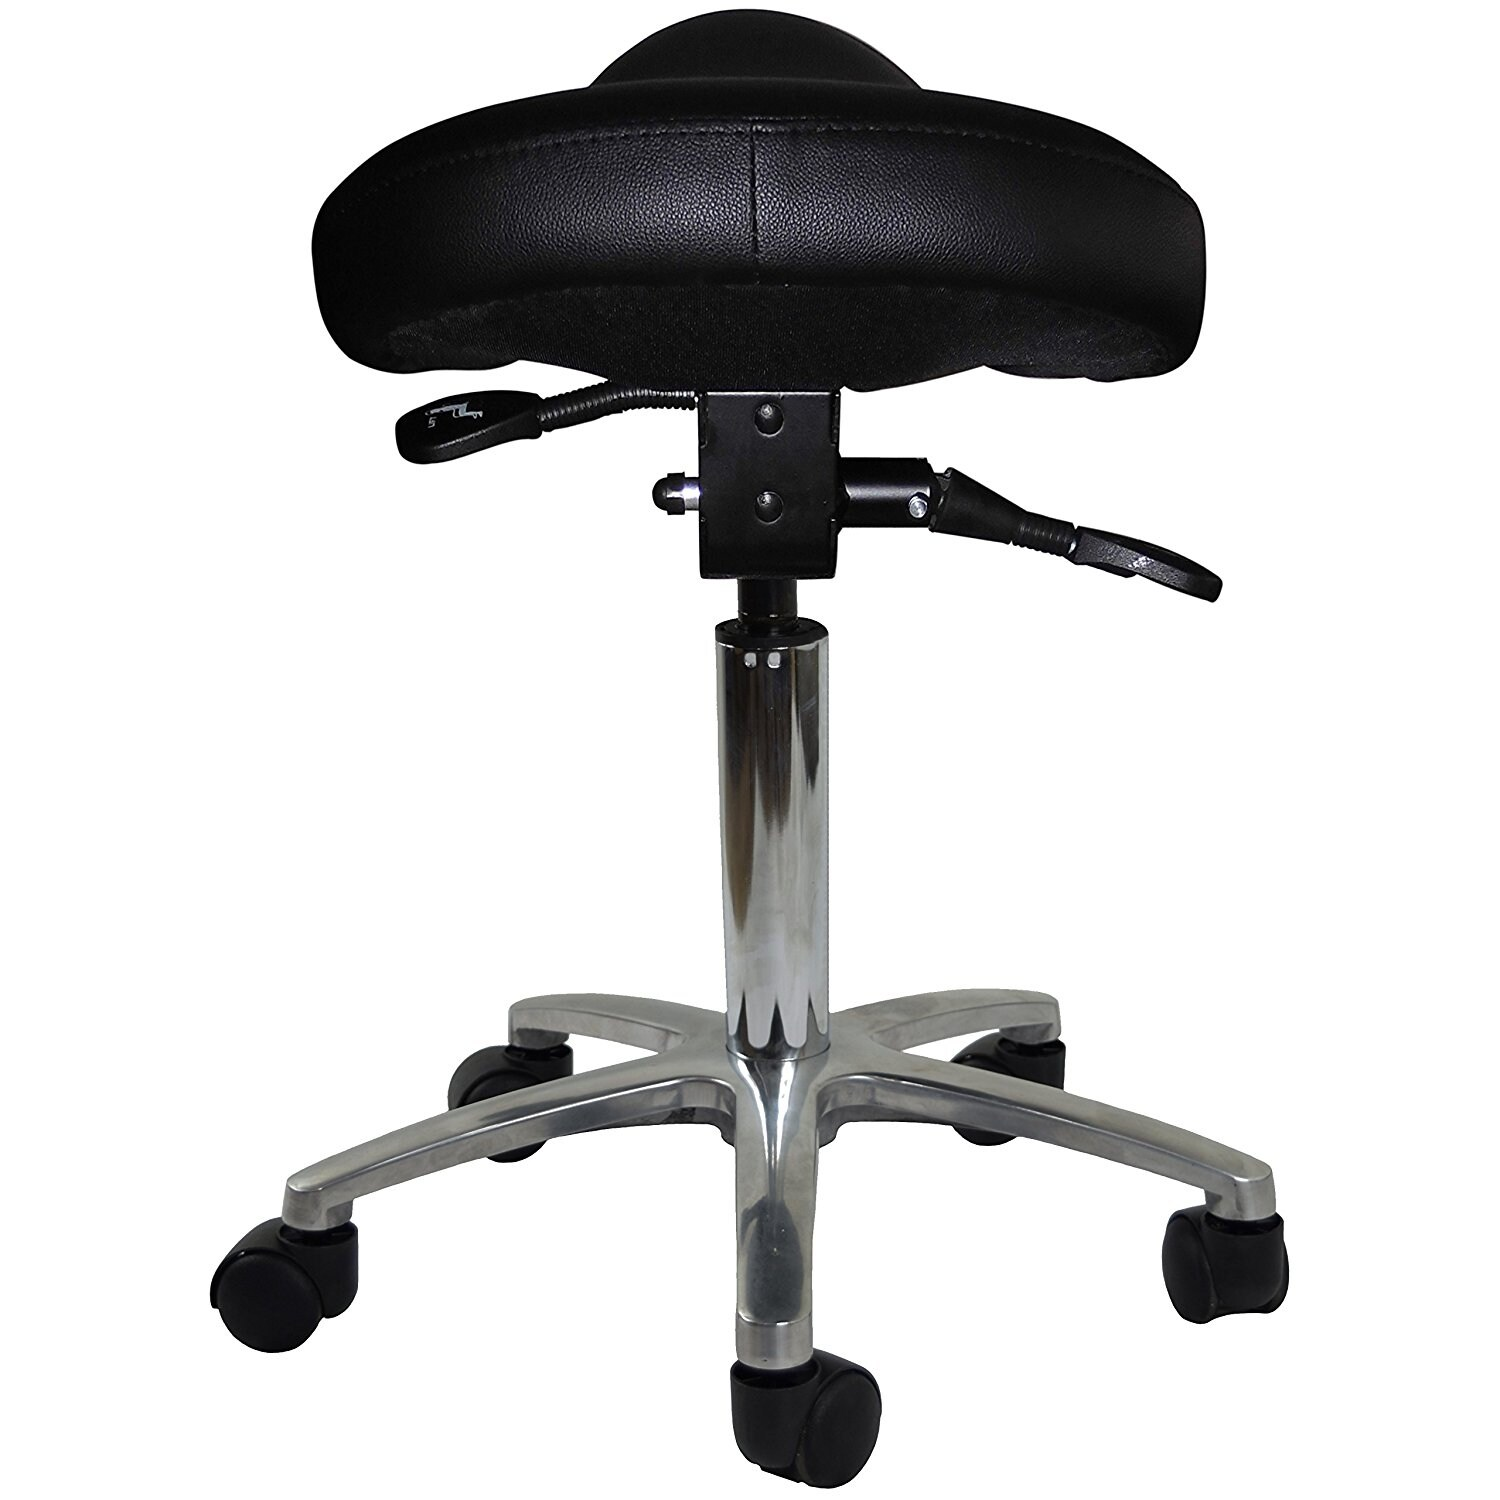 Ordinaire Shop 2xhome Adjustable Saddle Stool Backless Chair With Forward Tilting  Seat Great For Home U0026 Office, Exam, Waiting Rooms U0026 More   Free Shipping  Today ...